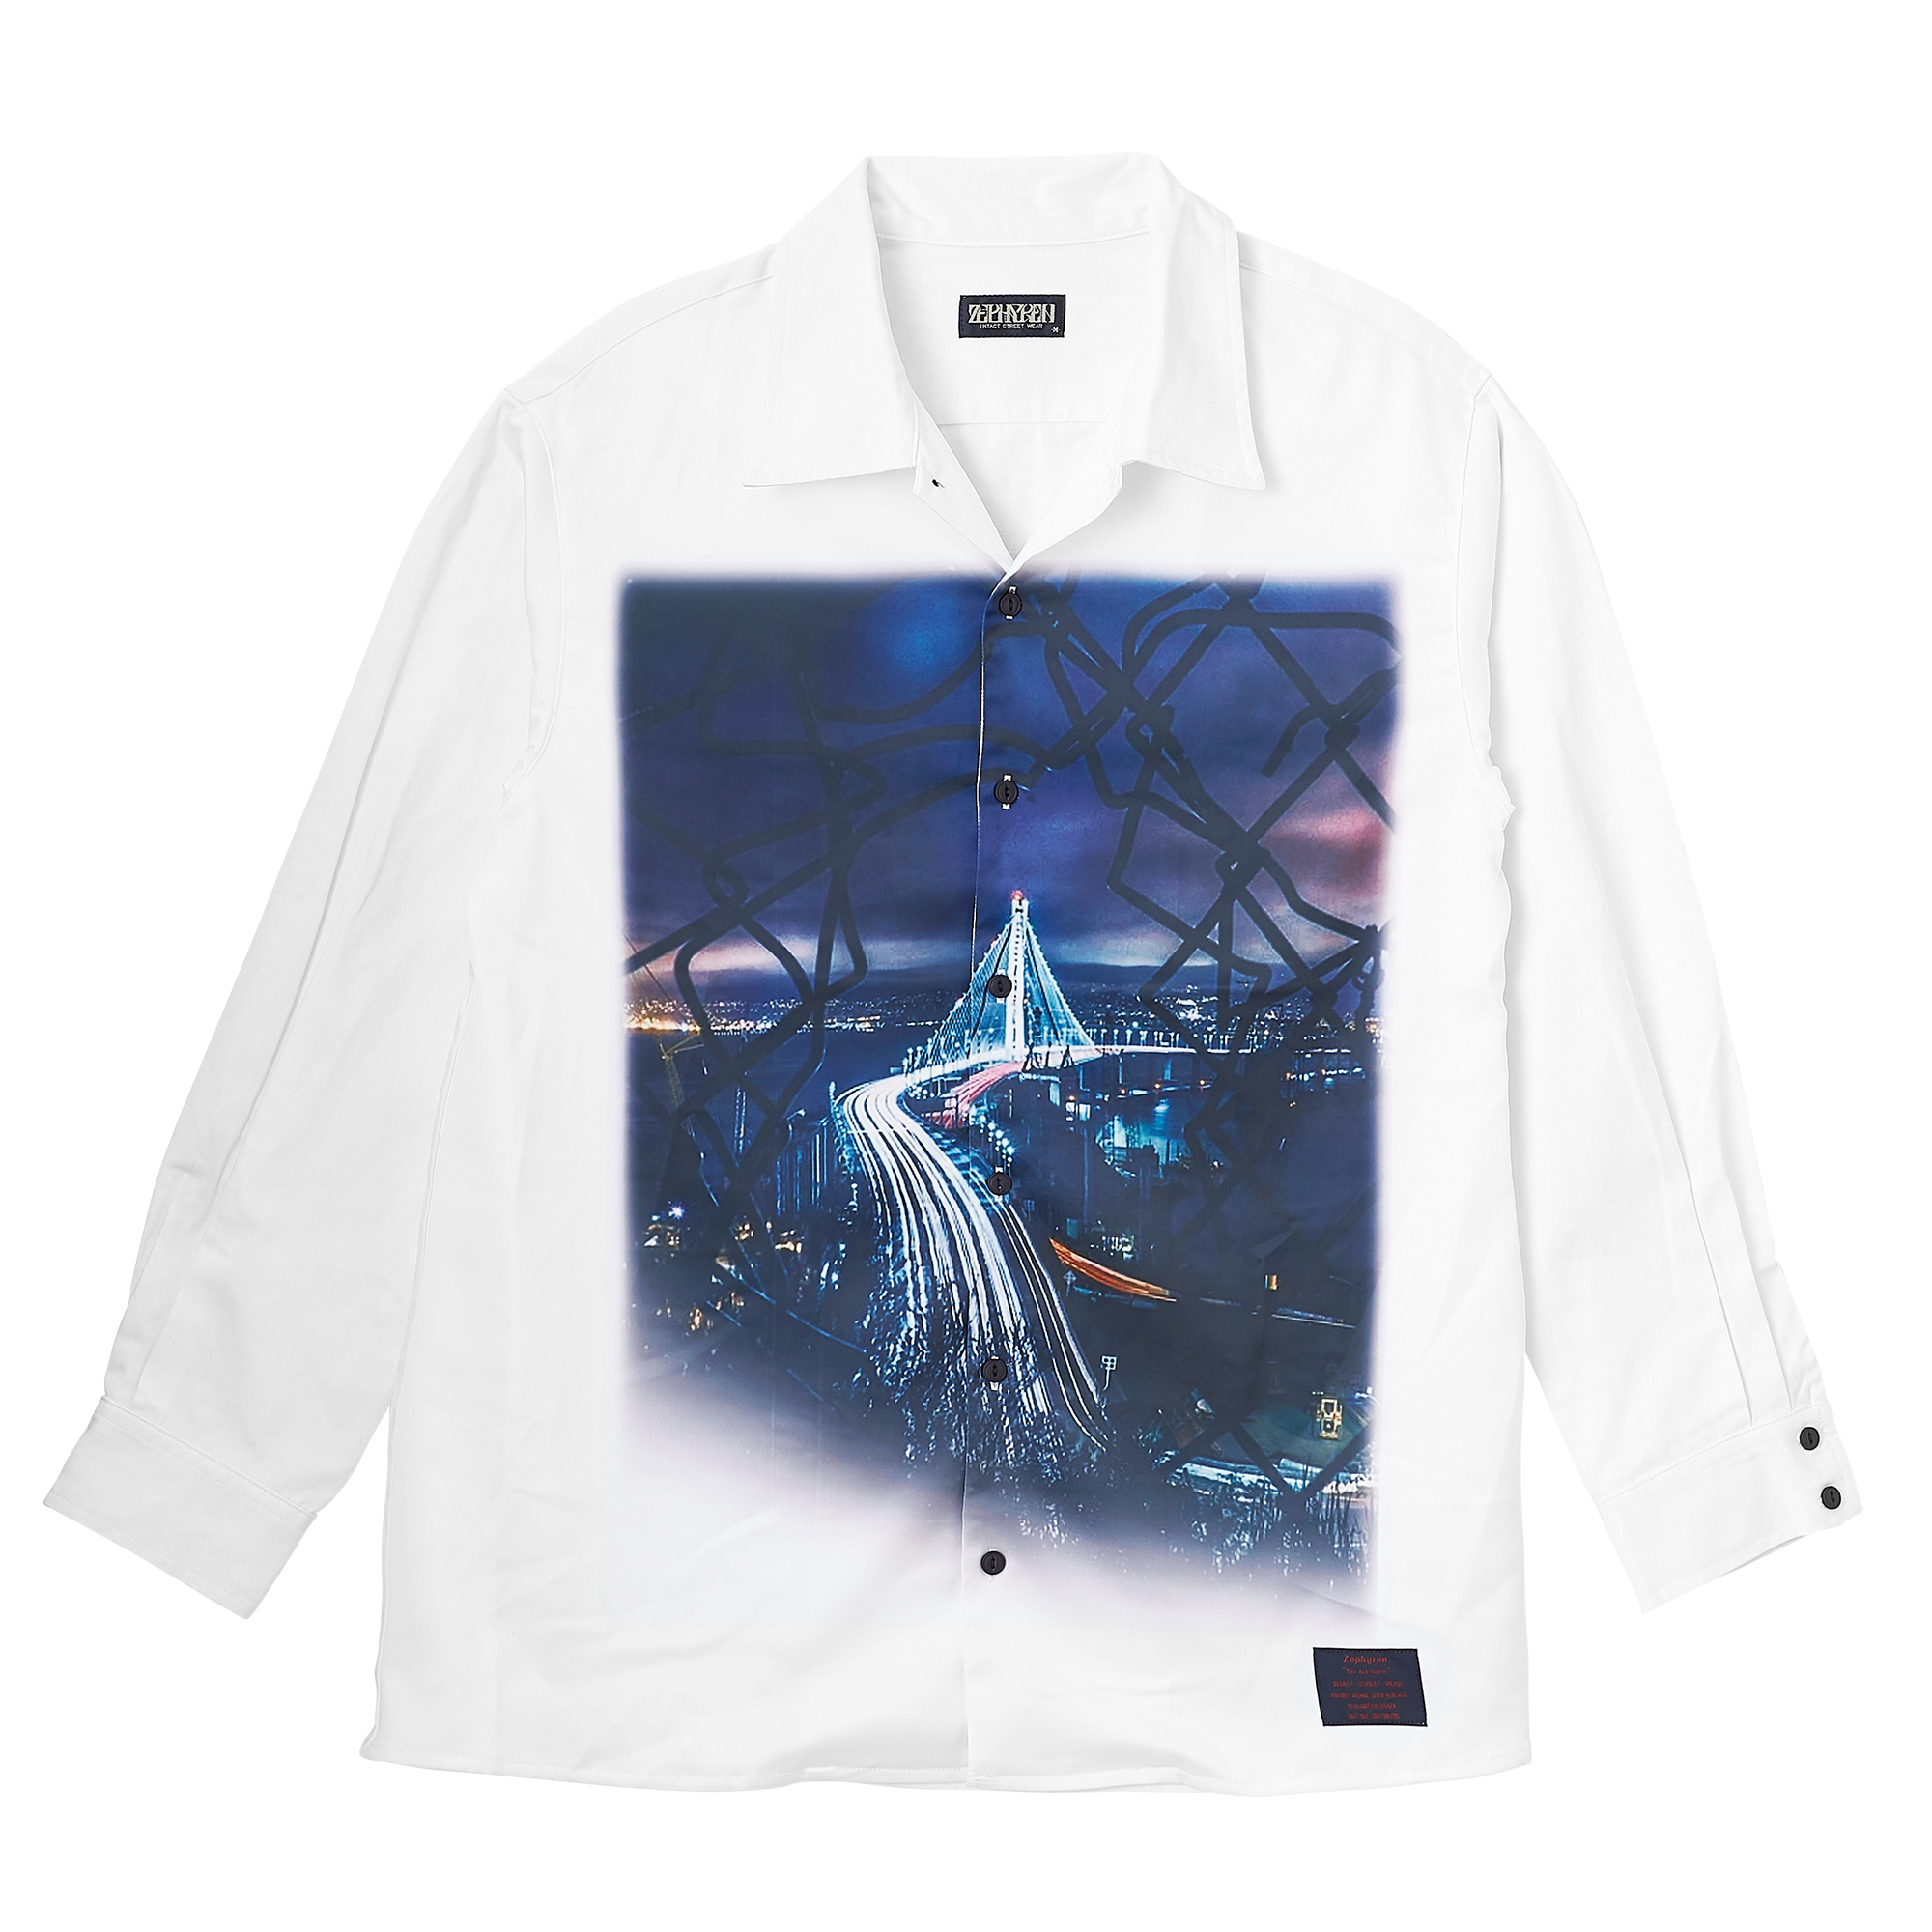 Zephyren(ゼファレン)PHOTO PRINT SHIRT L/S WHITE / aurea mediocritas